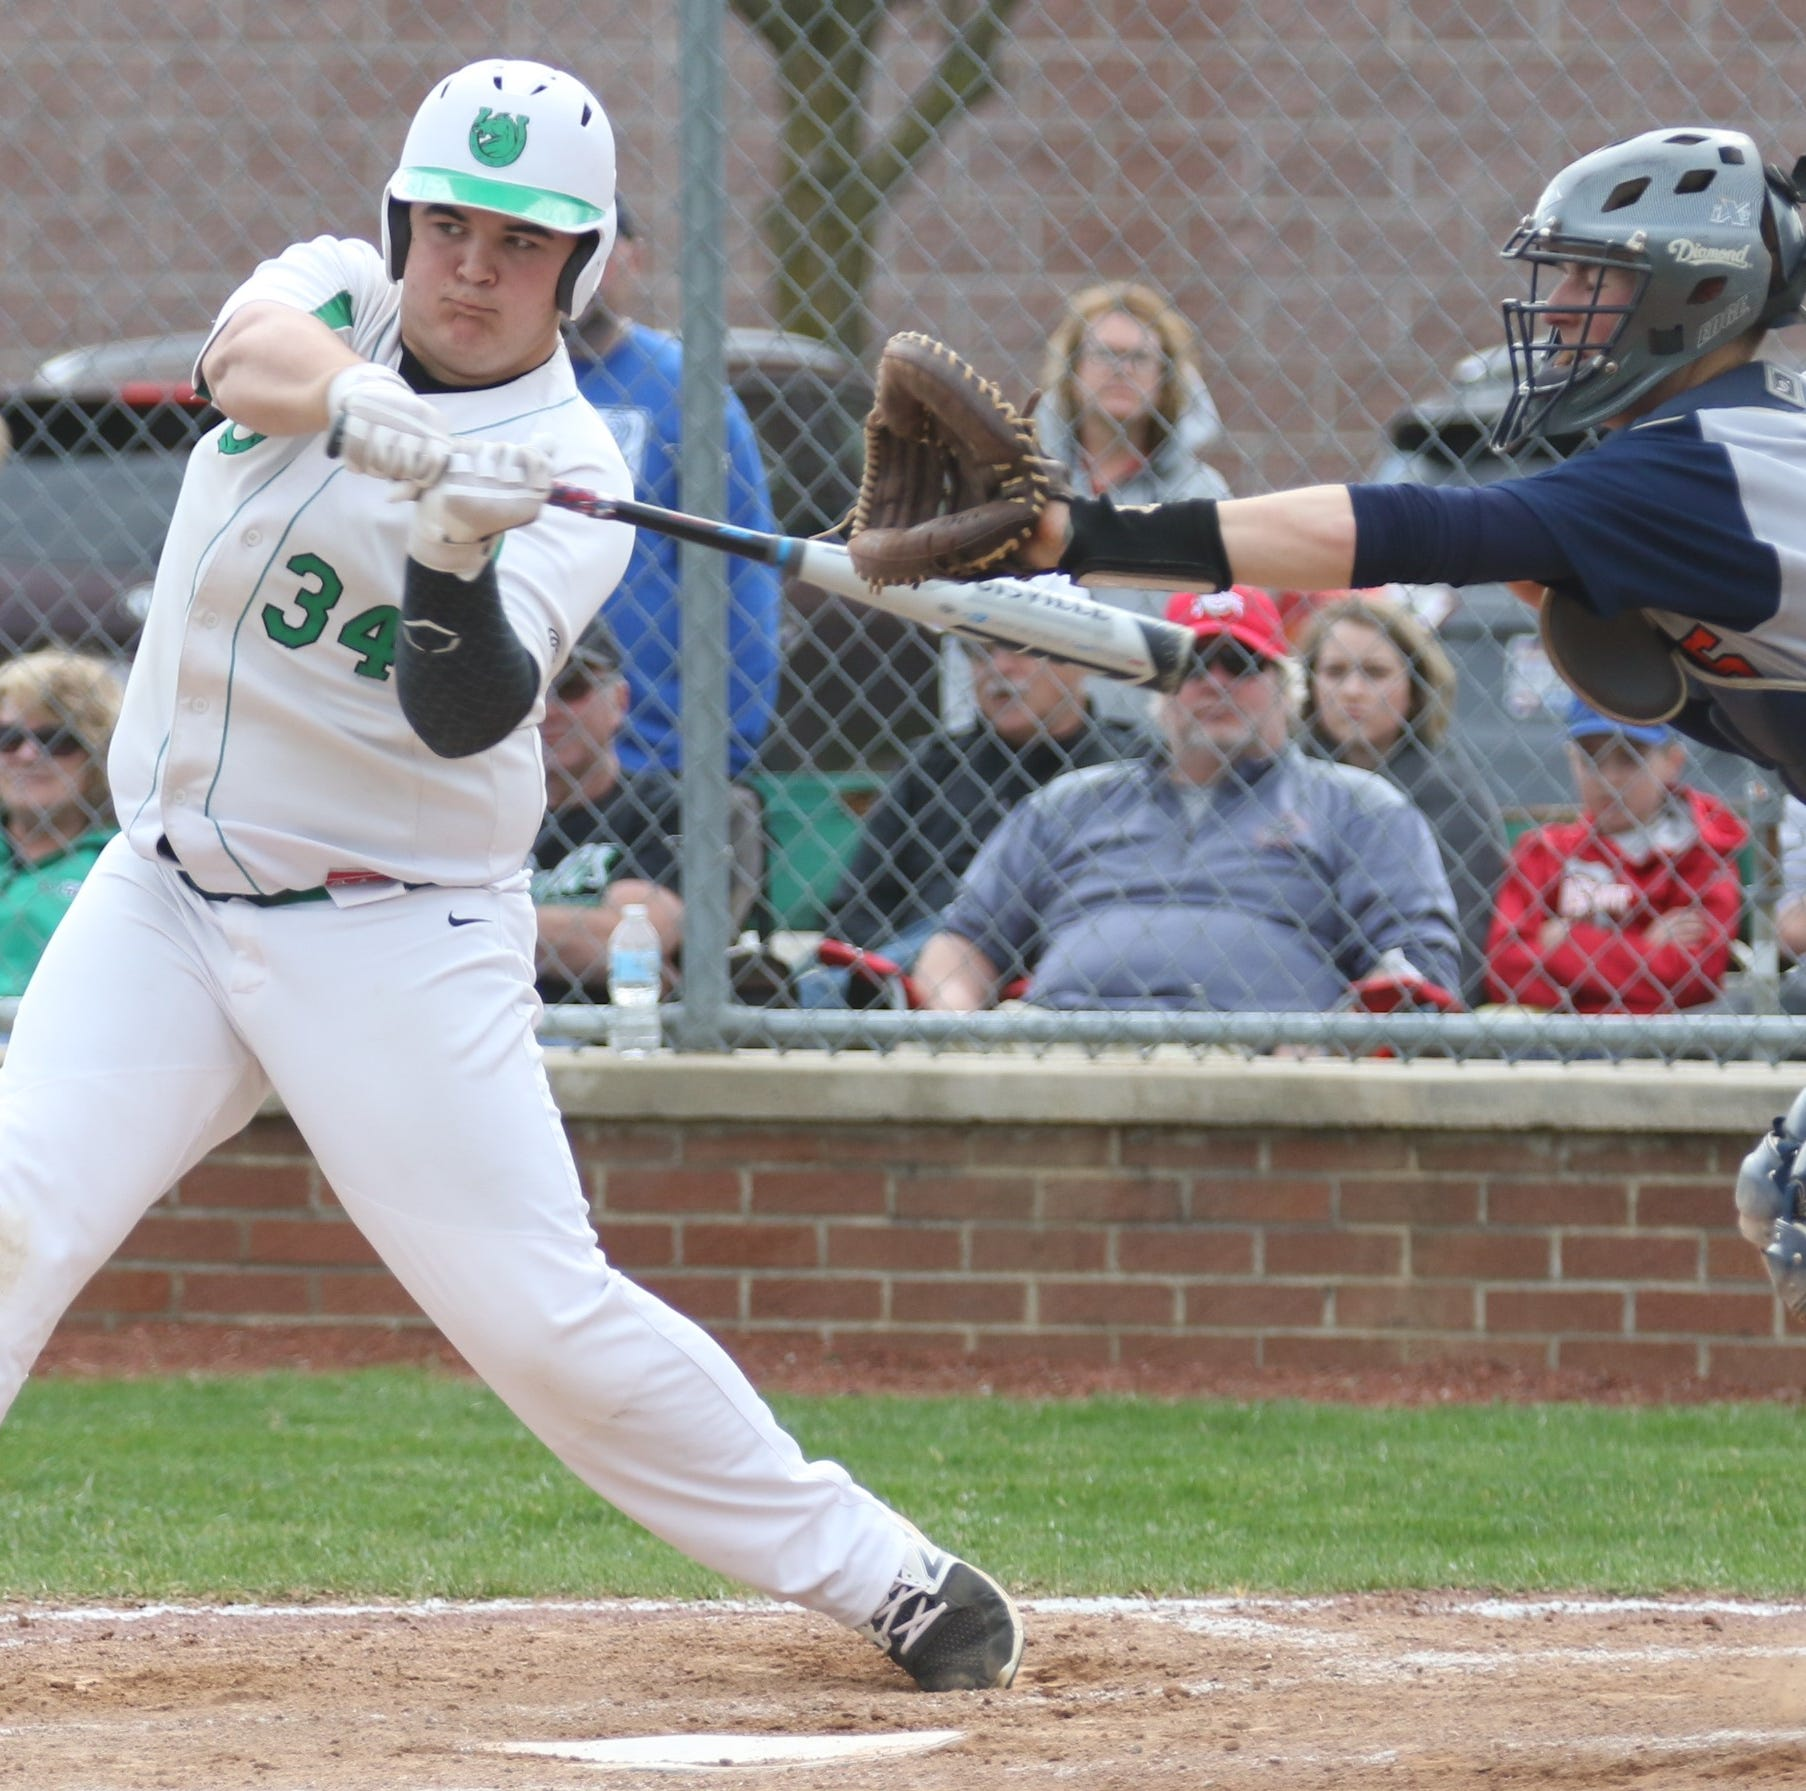 Scoreboard: Talbott's 6 RBI leads Colts to flip script on Galion